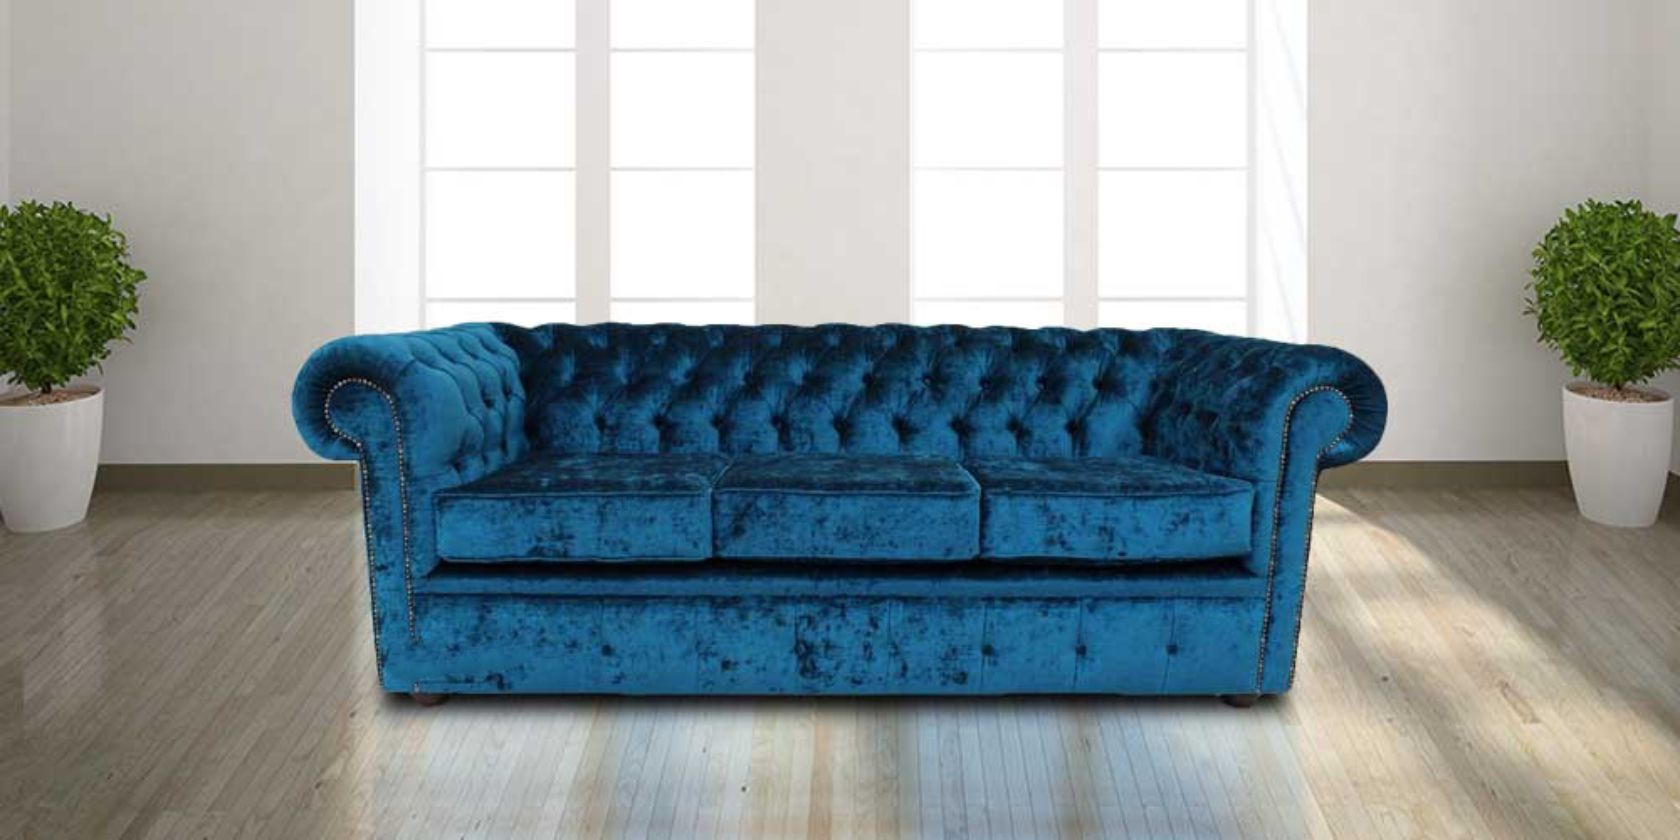 Buy Blue Velvet Chesterfield Sofa Uk Designersofas4u